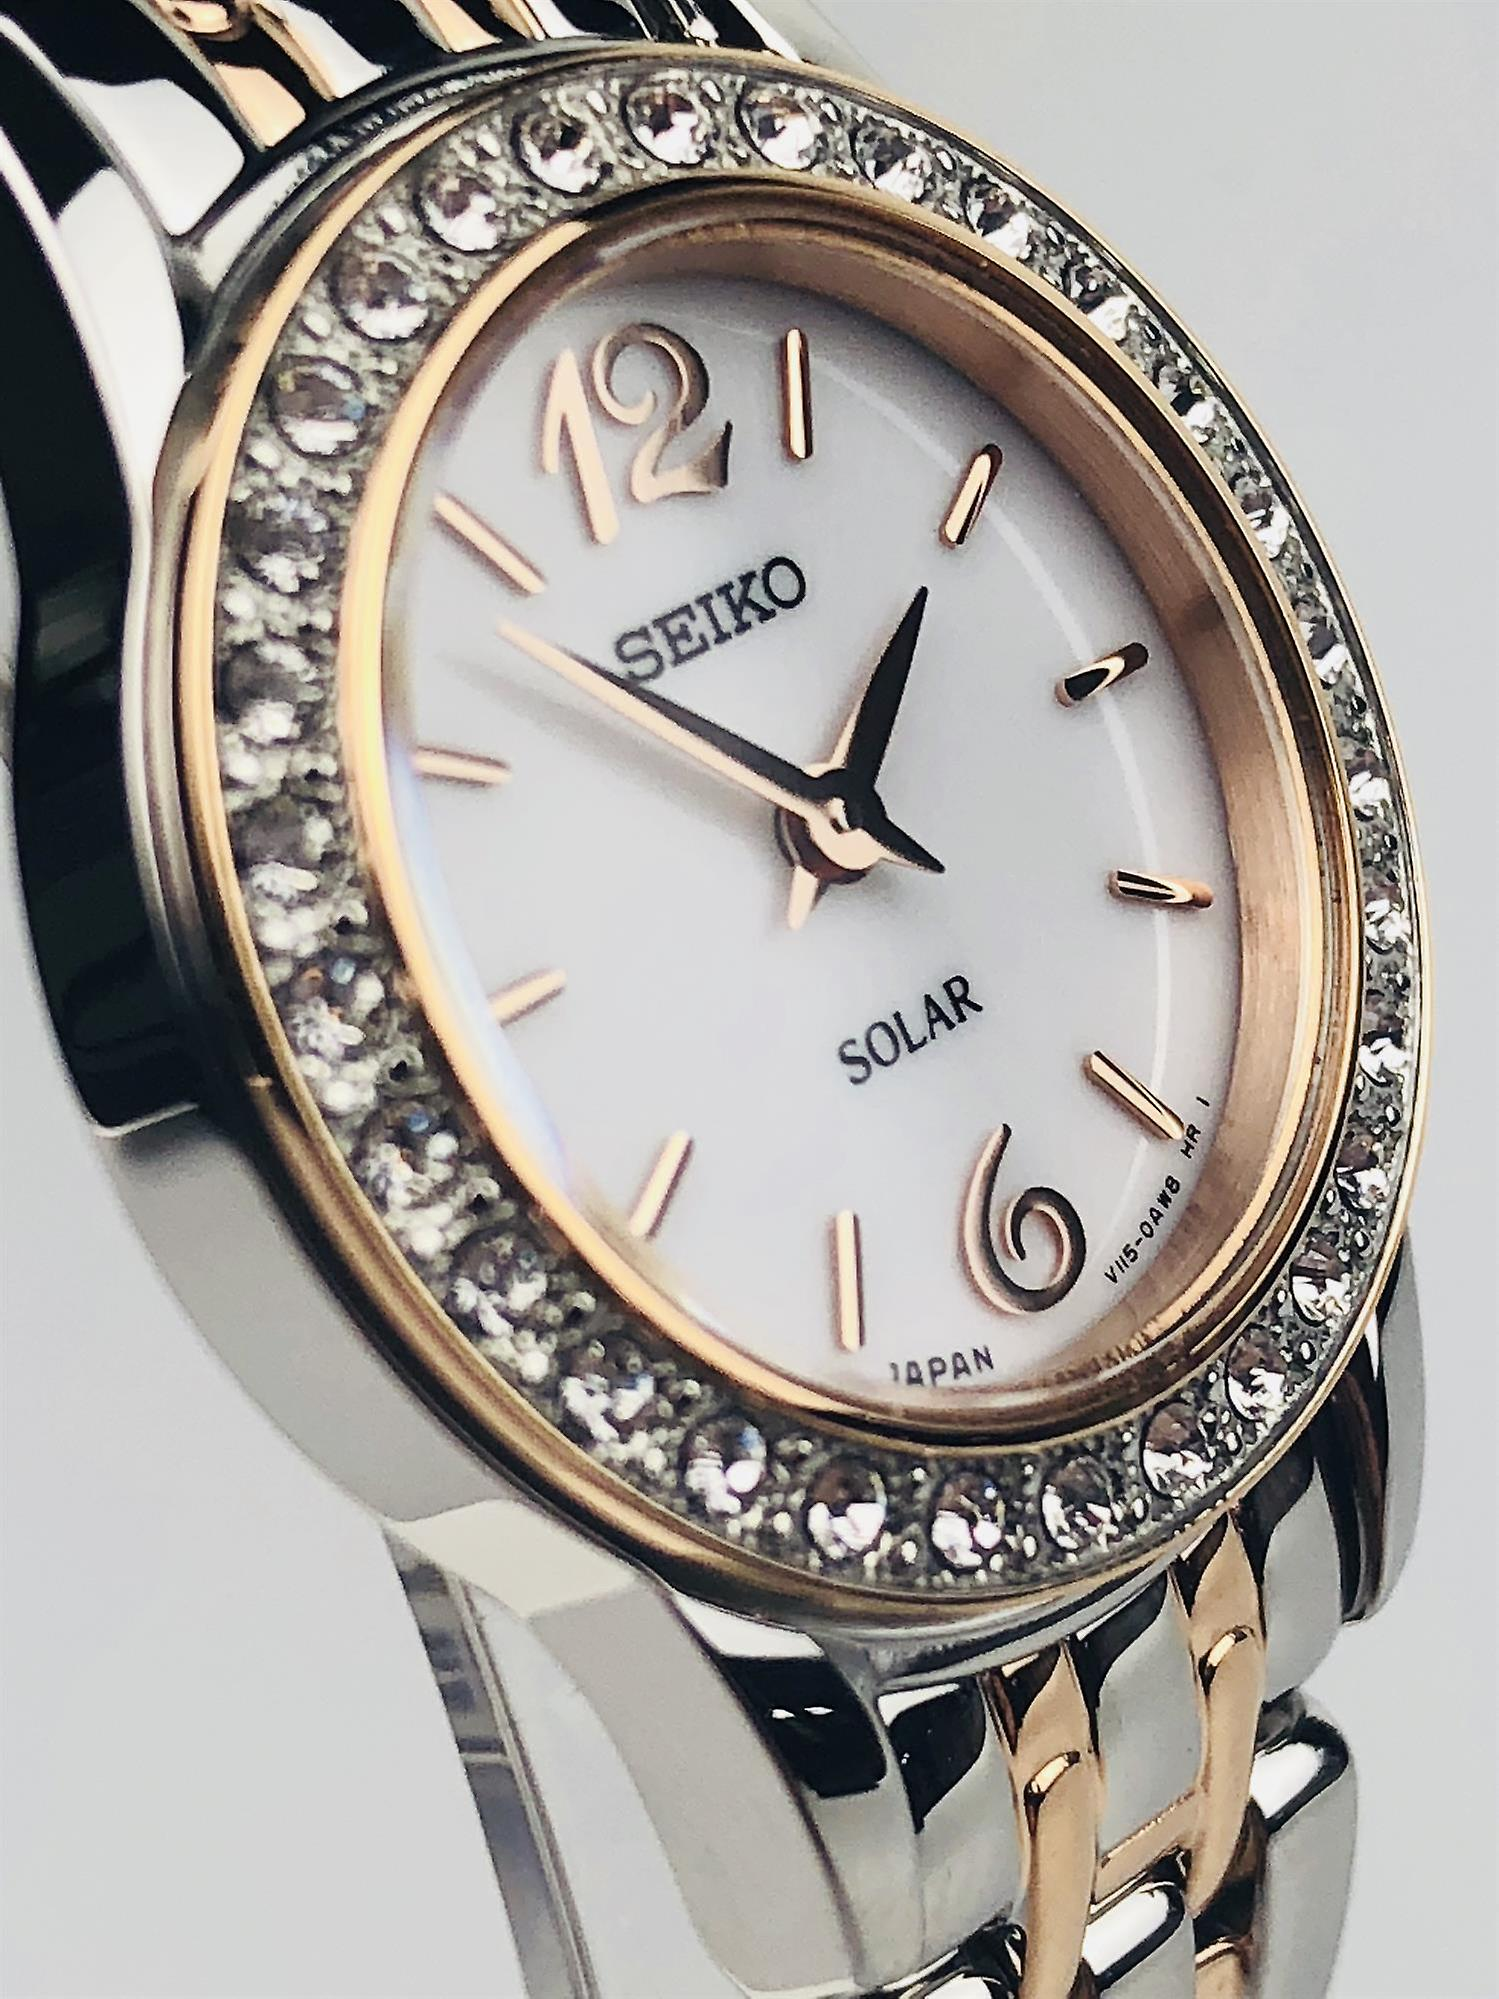 Seiko Dress Solar Two Tone Steel Case and Bracelet Ladies Watch SUP130P9 24mm